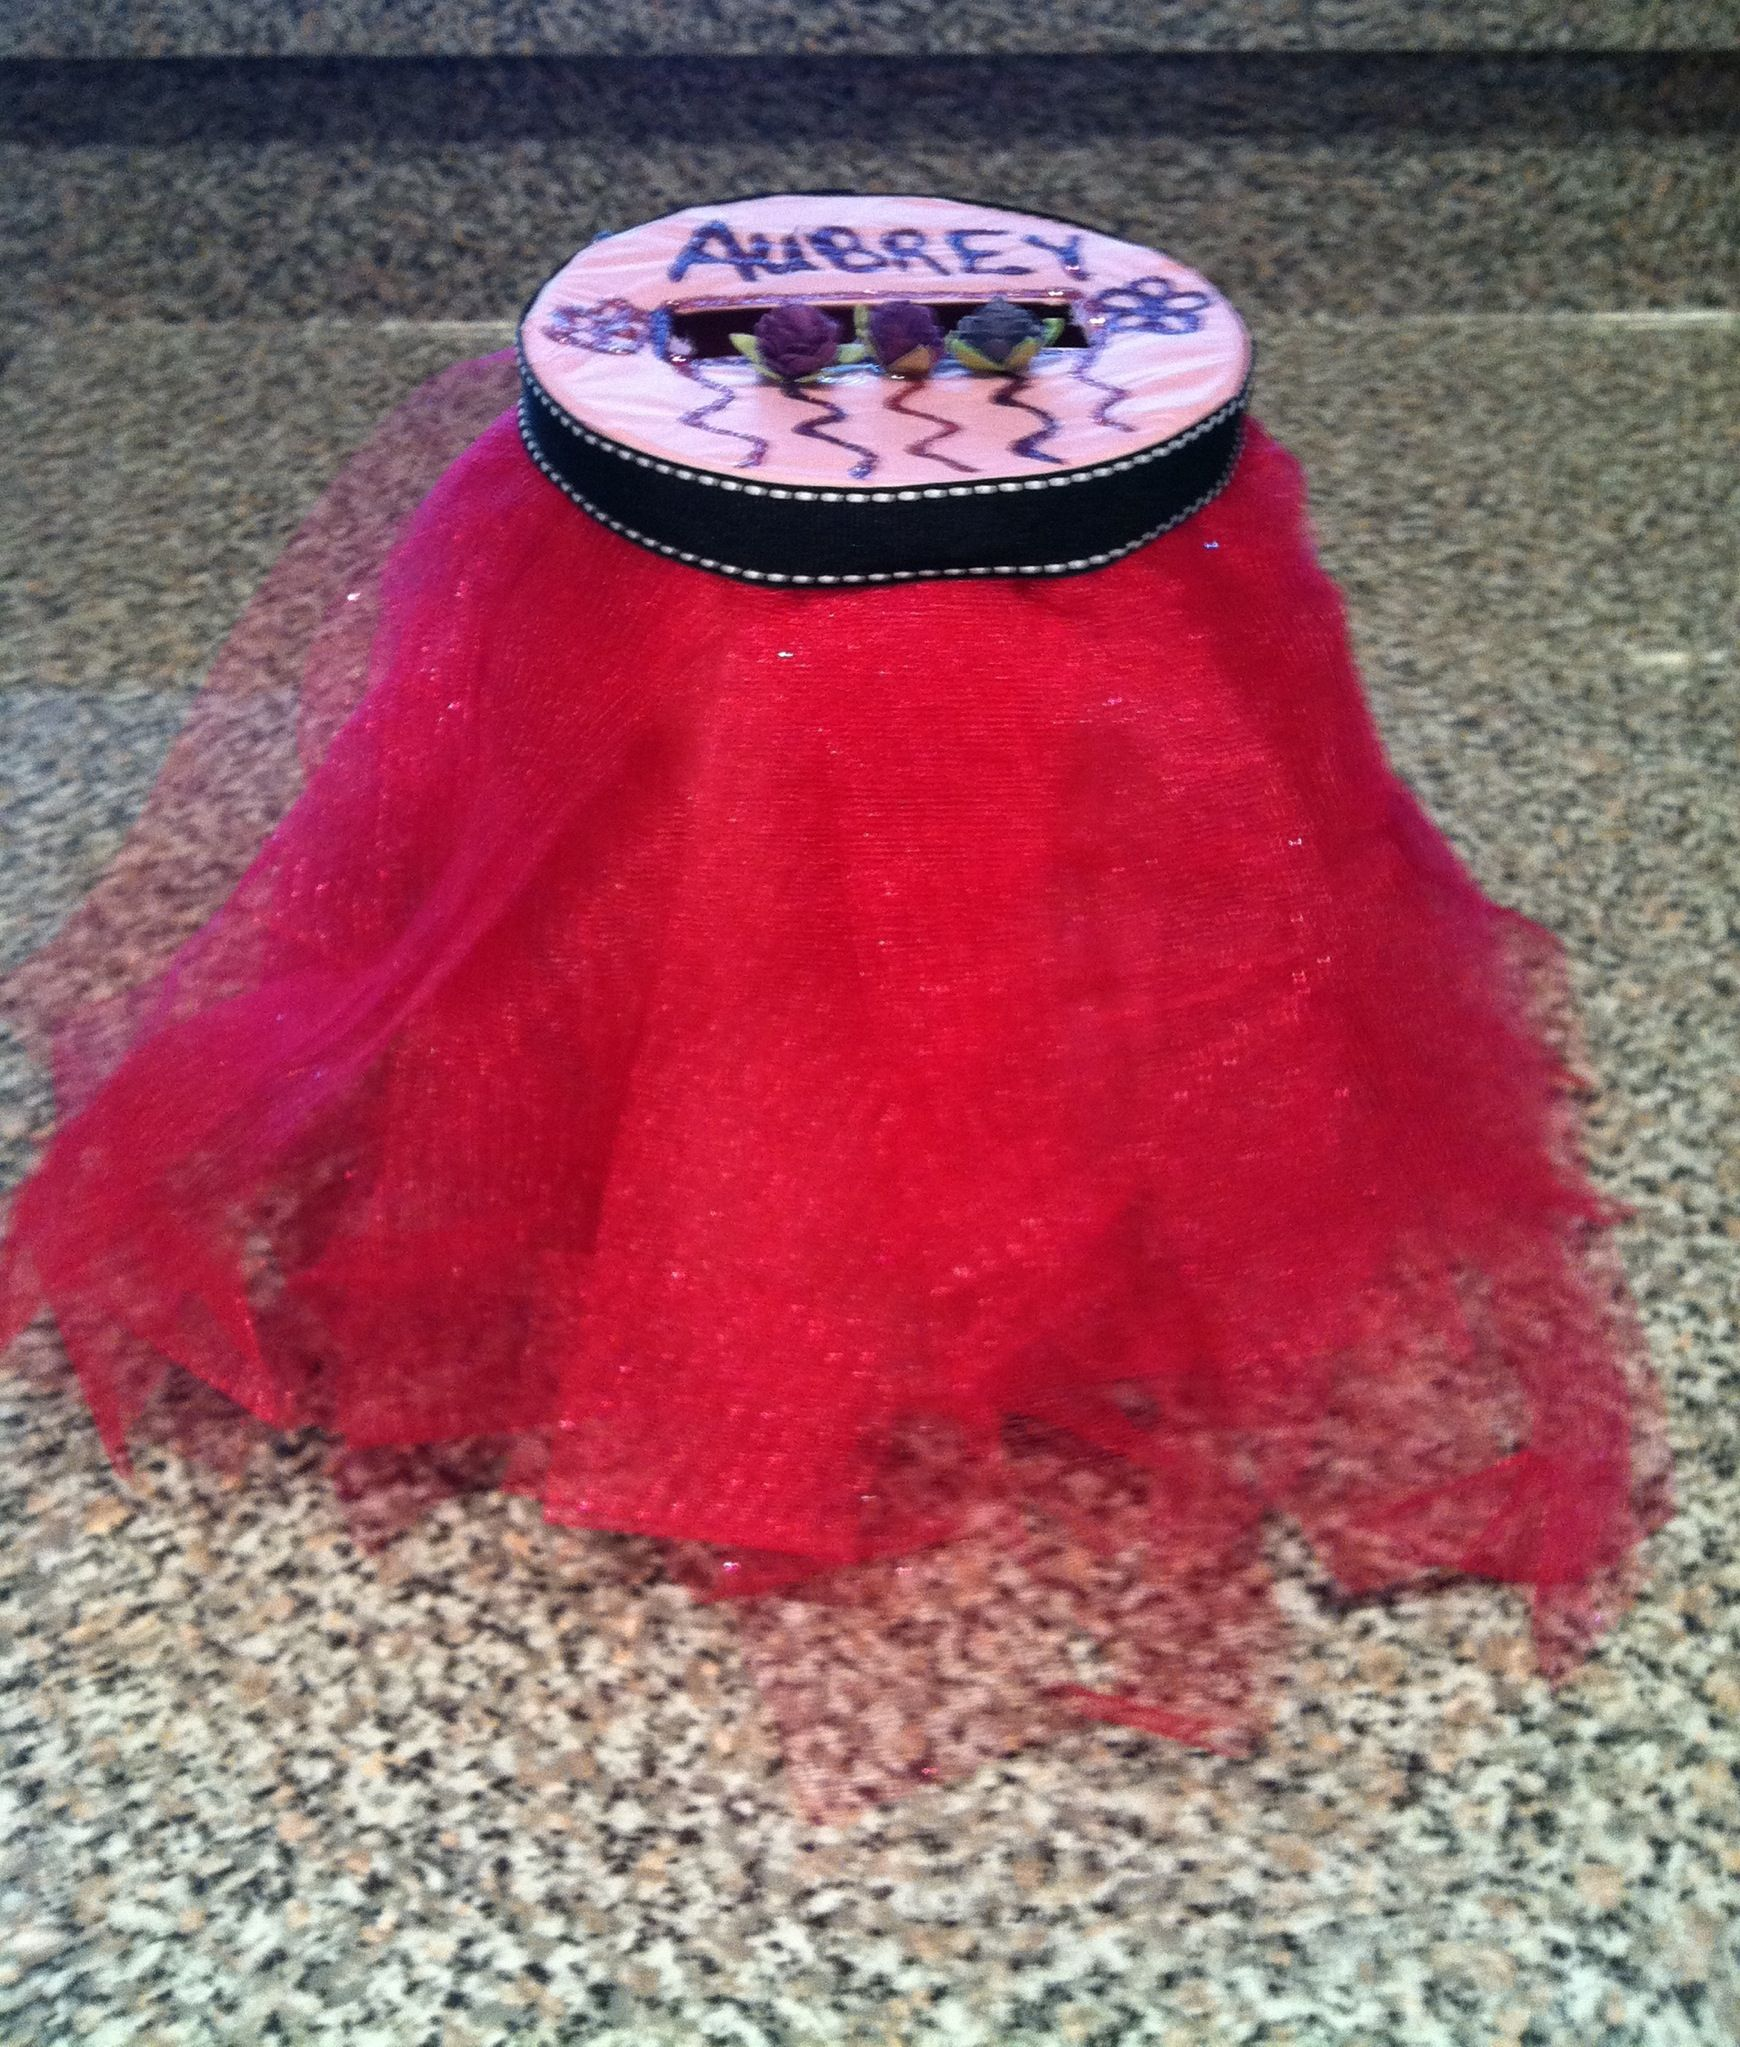 My daughters Valentines box for school. It is a tutu!